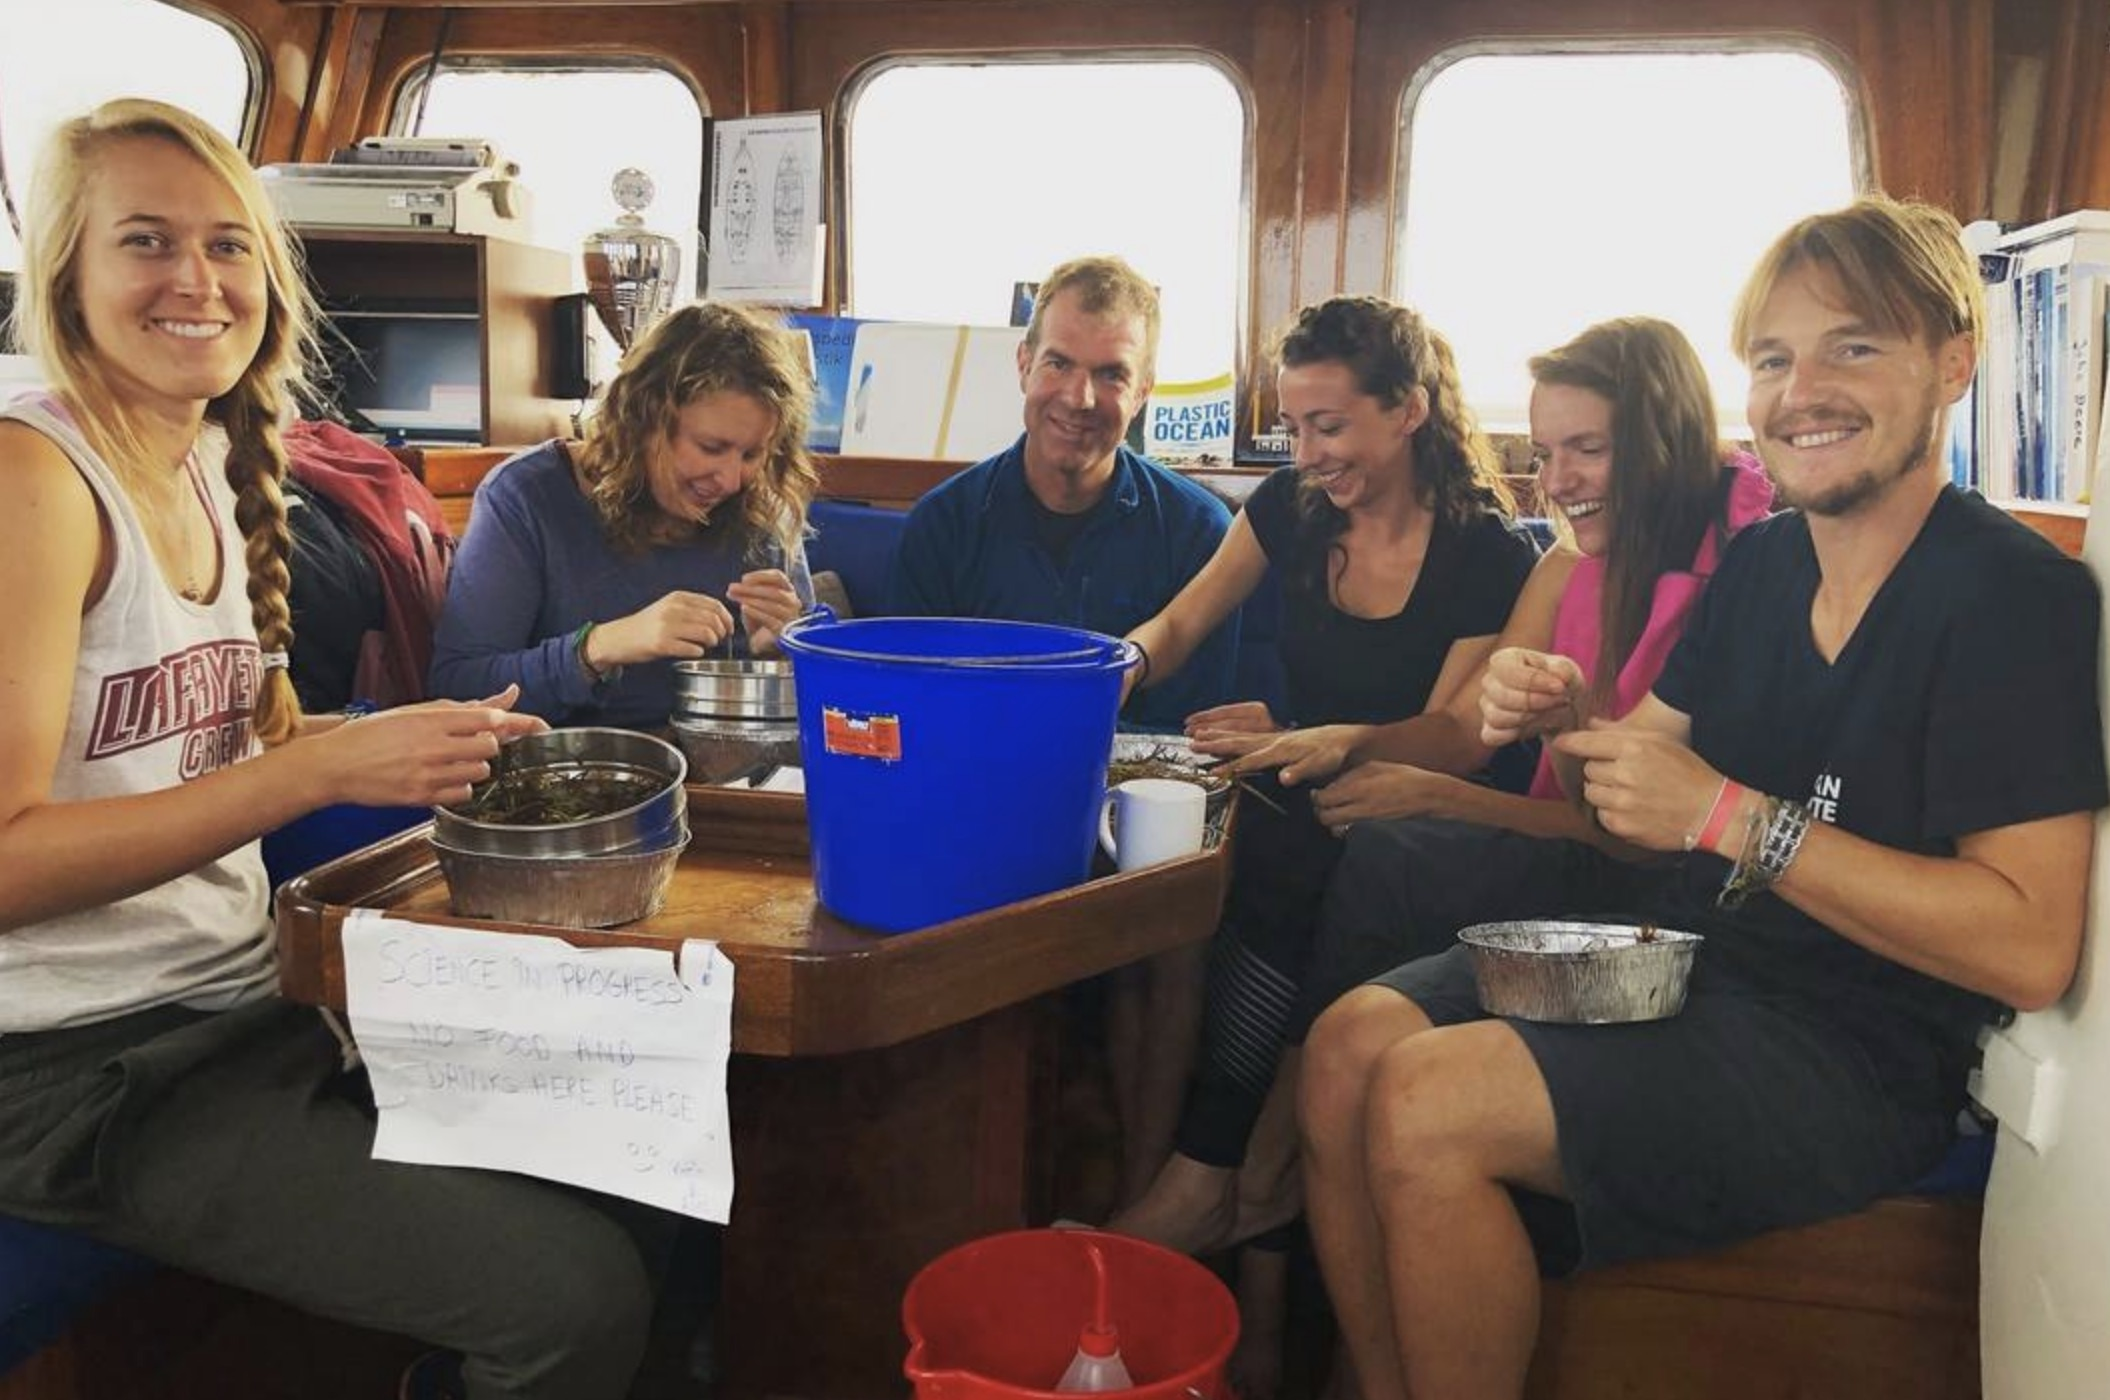 Sifting through seagrass for microplatic. L-R: Katie Stevens, Roos Swart, Frederick Smith, Sofia Di Stefano, Fosca Poltronieri and Kerl Beerenfenger.